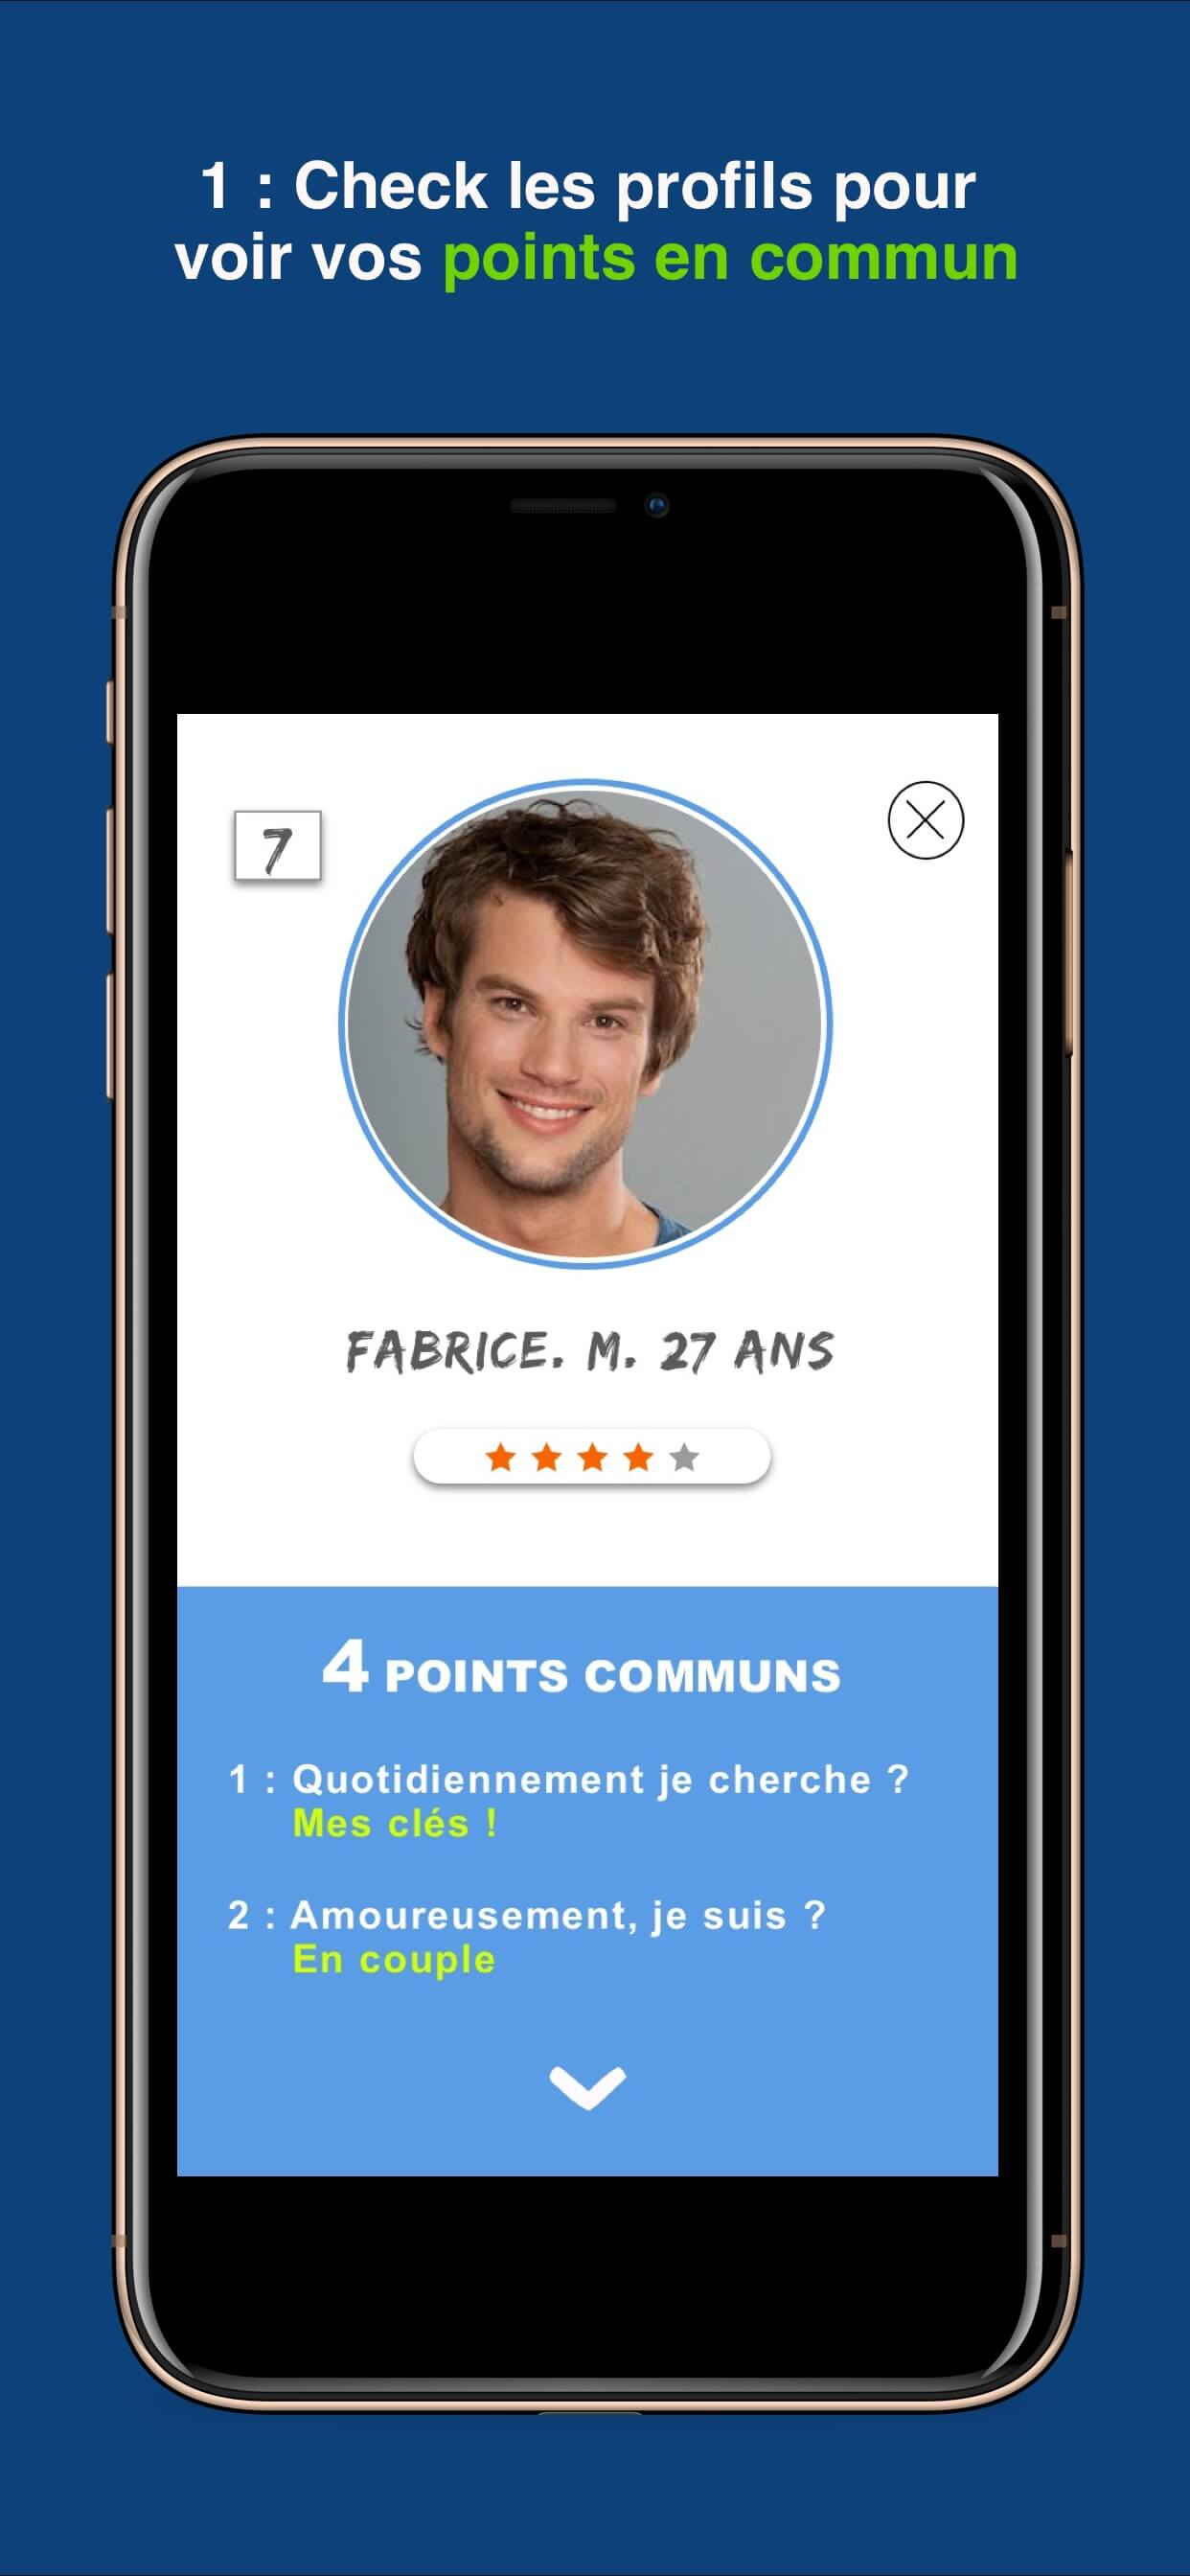 elyot-application-ios-iphone-freelance-bordeaux-jeremy-peltier-8